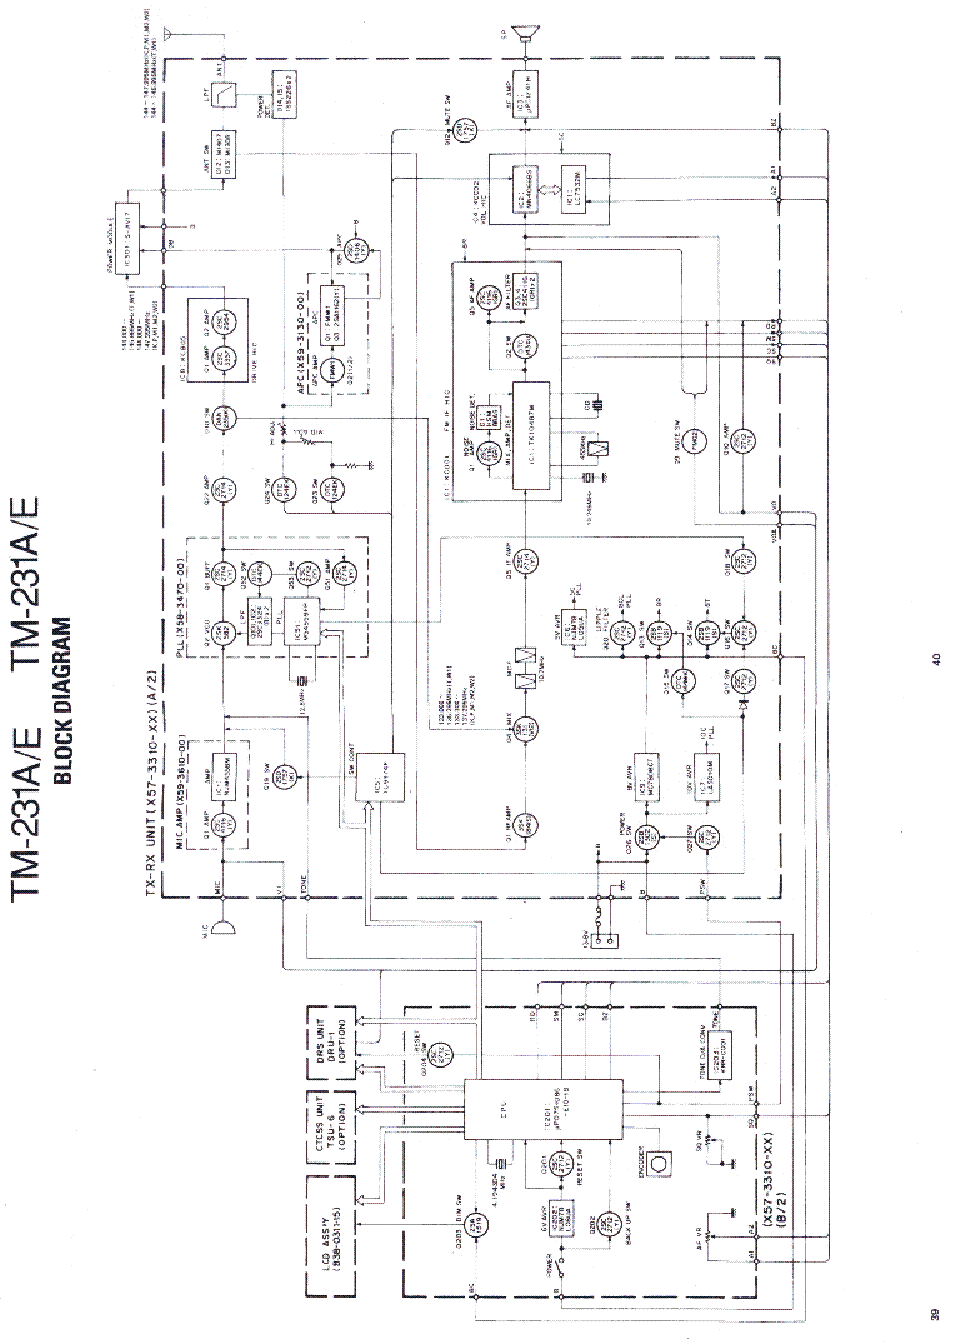 KENWOOD TM-231 service manual (1st page)